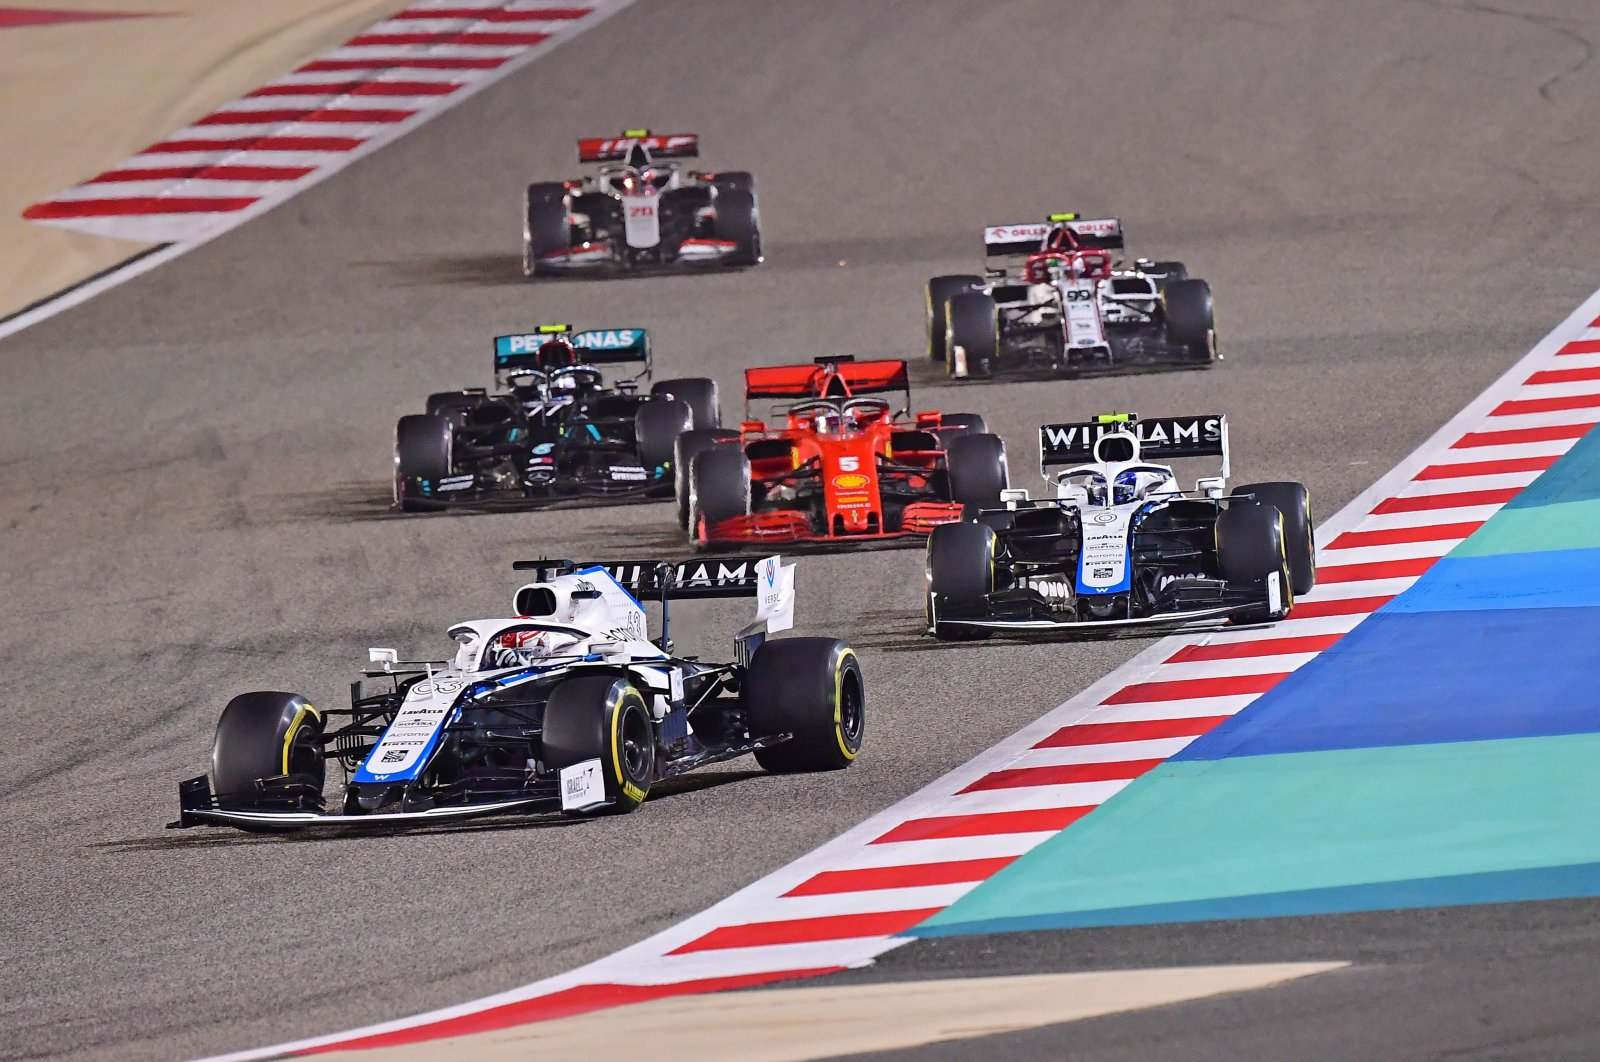 George Russell (front) leads his co-driver Nicholas Latifi (R) in a race in Sakhir, Bahrain, Nov. 29, 2020. (AFP PHOTO)